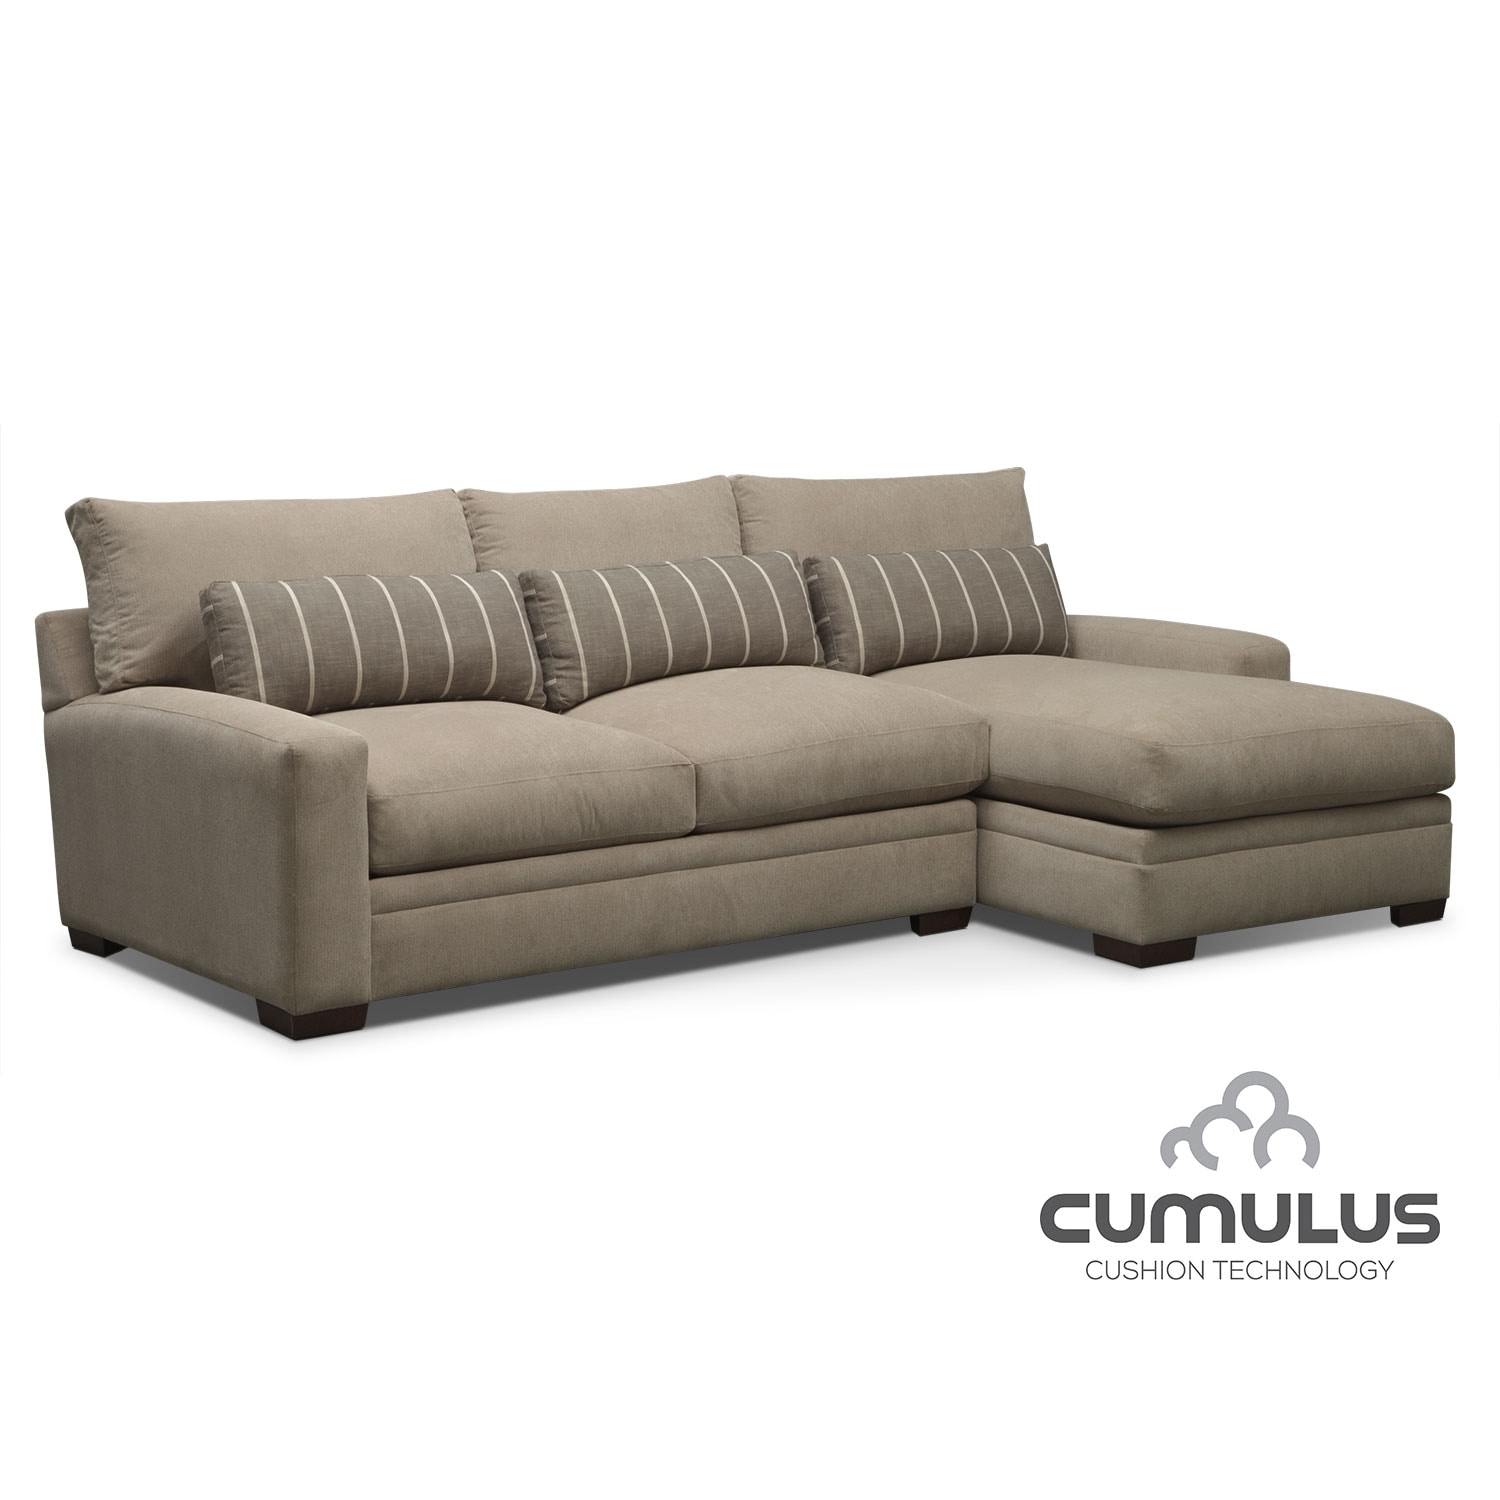 Living Room Furniture - Ventura 2-Piece Right-Facing Sectional - Buff